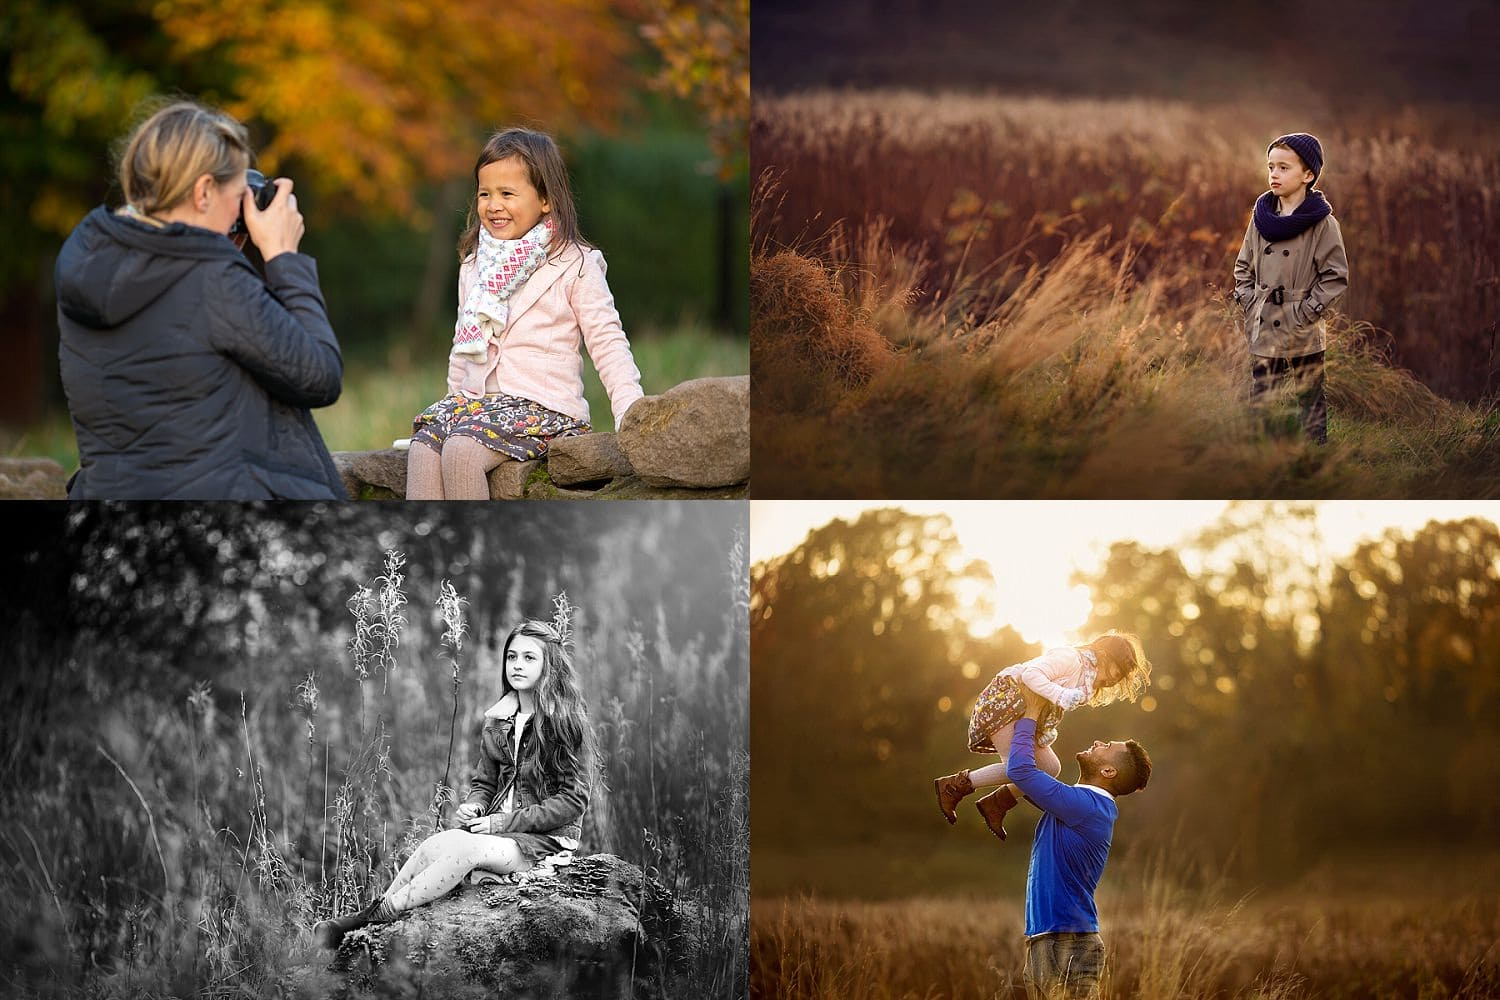 Glasgow Child Photography Course